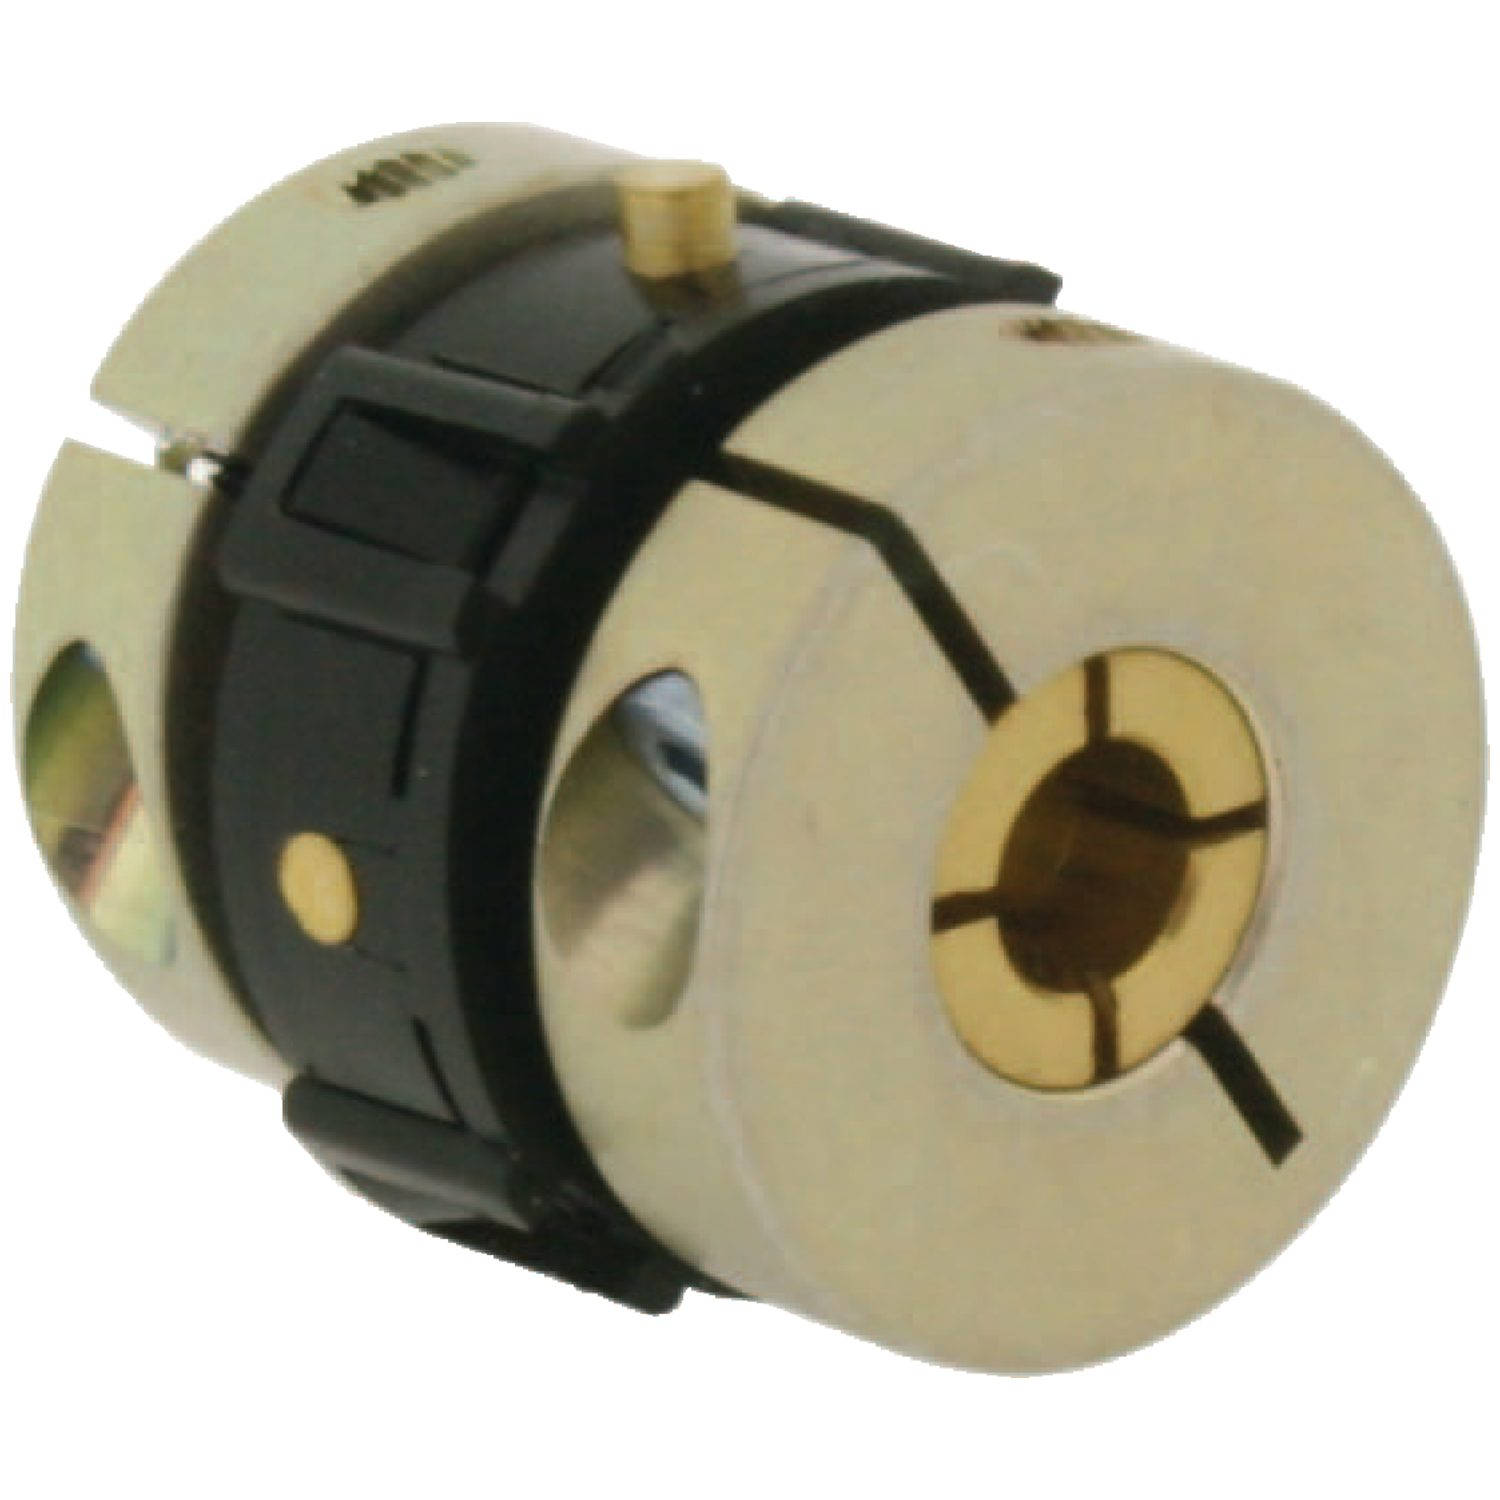 R3063 - Universal Lateral coupling